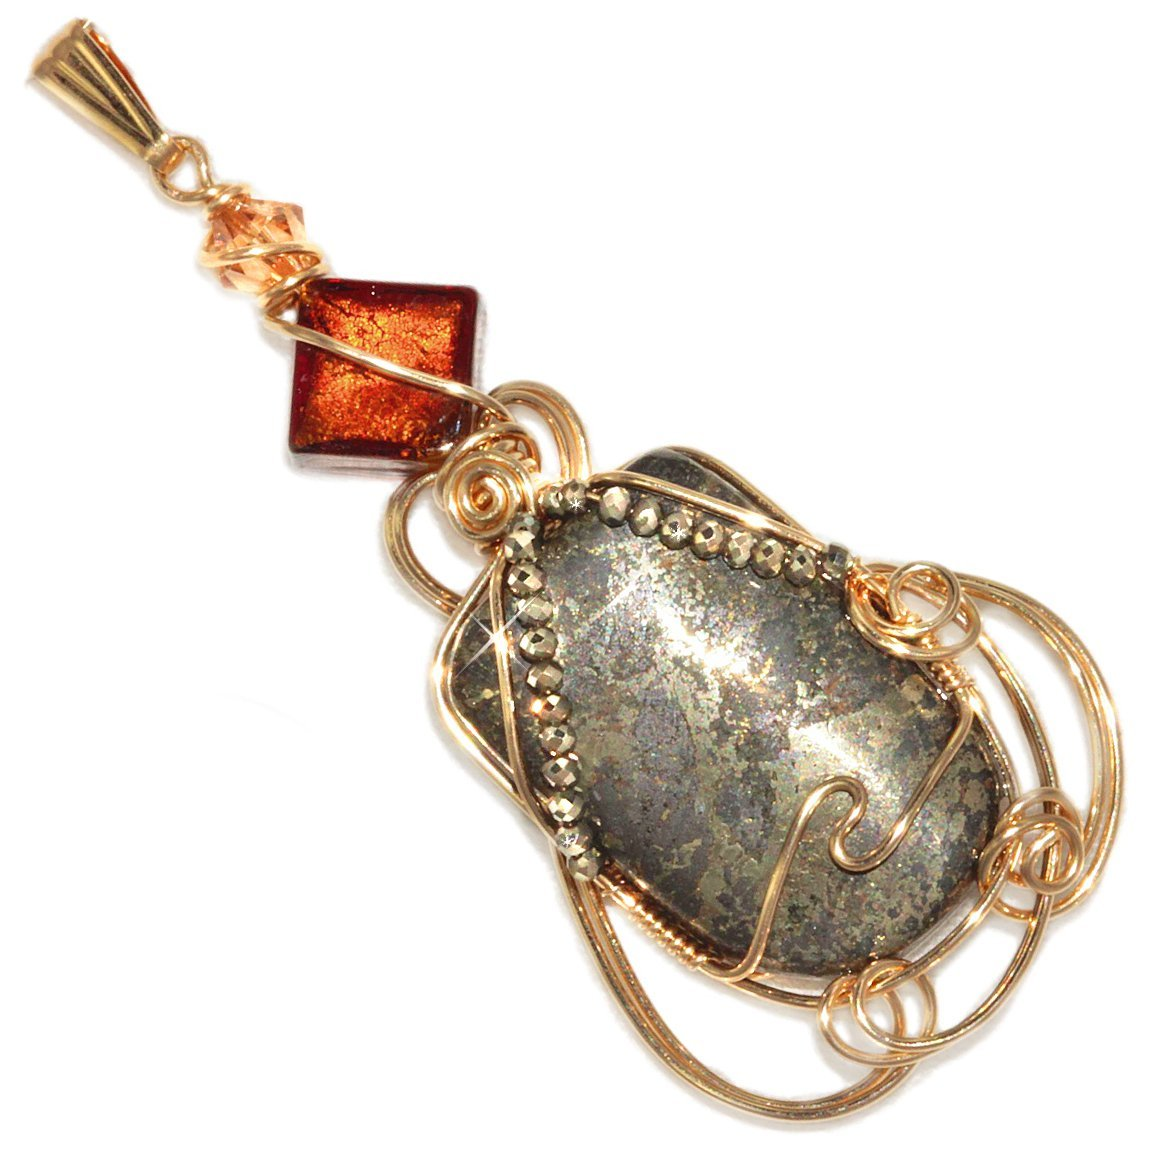 Gold Filled Wire Wrap Handmade Sterling Silver Tiger Eye Ring By Jandsgems Pyrite In Magnetite Healers Wrapped Pendant Puppylove Stone From Heaven And Earth